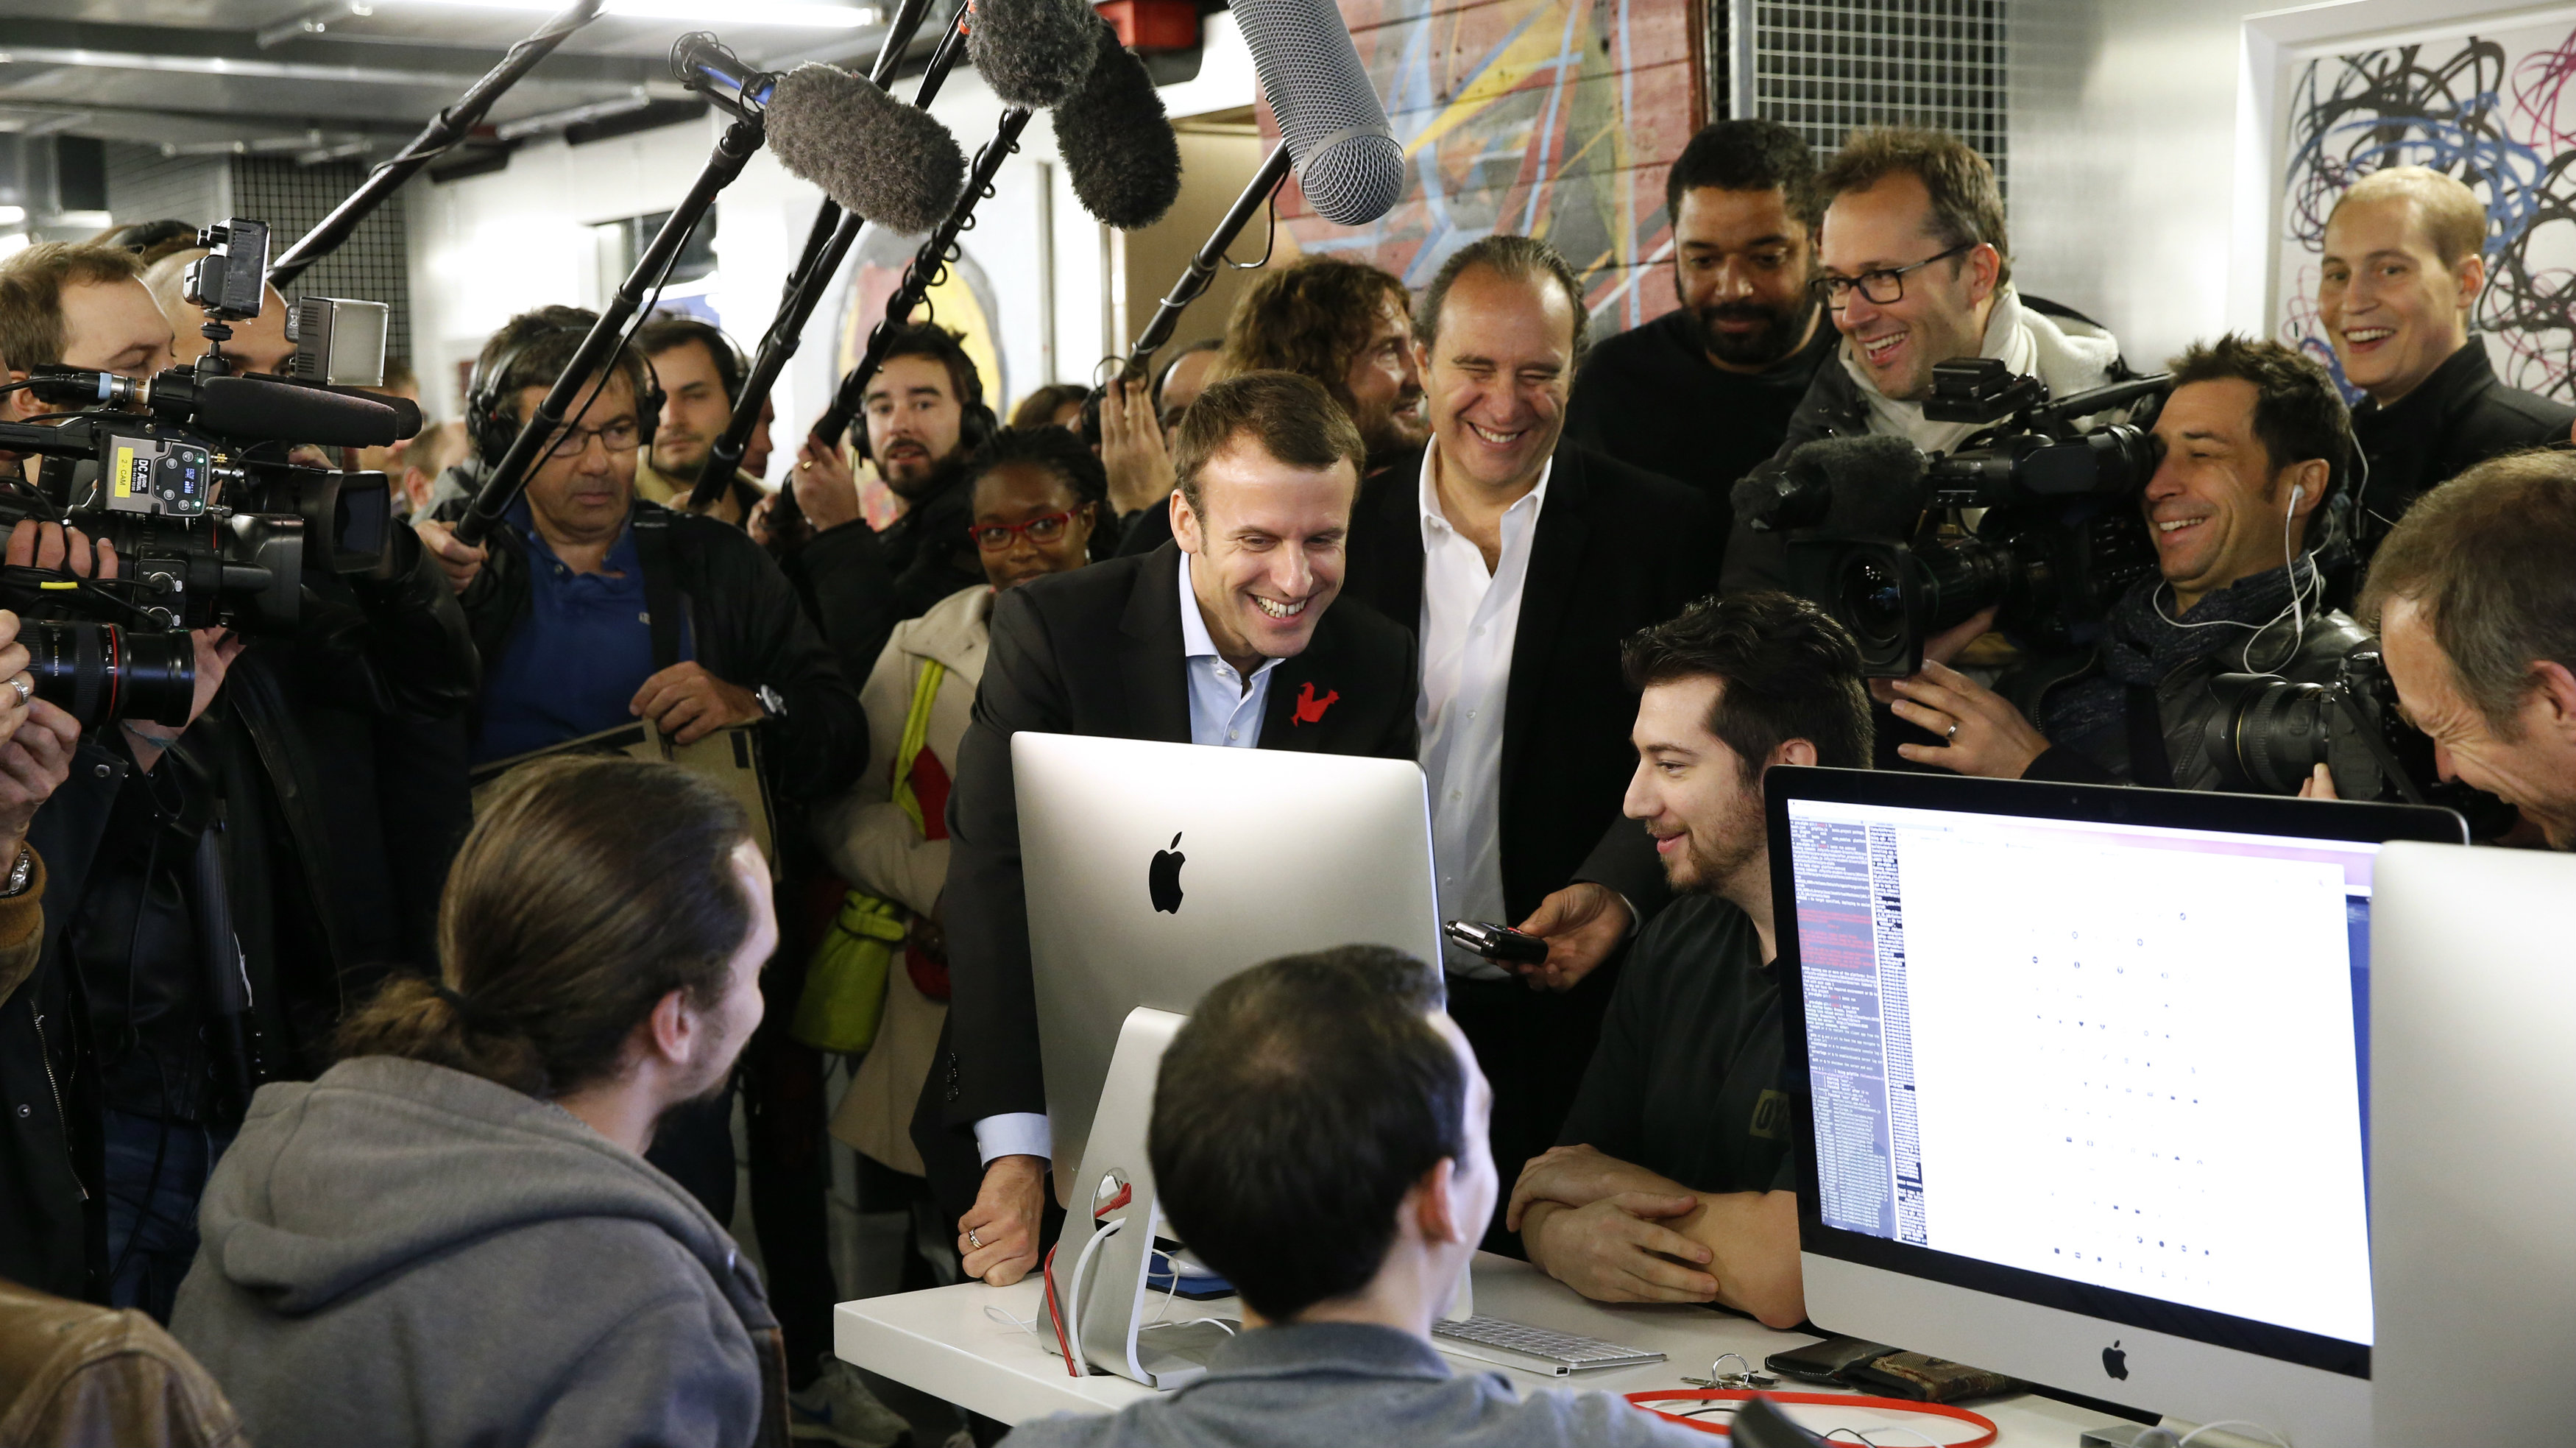 Journalists surround Xavier Niel (C), founder of French broadband Internet provider Iliad, French Economy Minister Emmanuel Macron (L) and Kwame Yamgnane (R) visit the 42 school campus in Paris, France, October 27, 2015. The French school 42, a private French computer programming school, was created and funded by Xavier Niel. REUTERS/Benoit Tessier